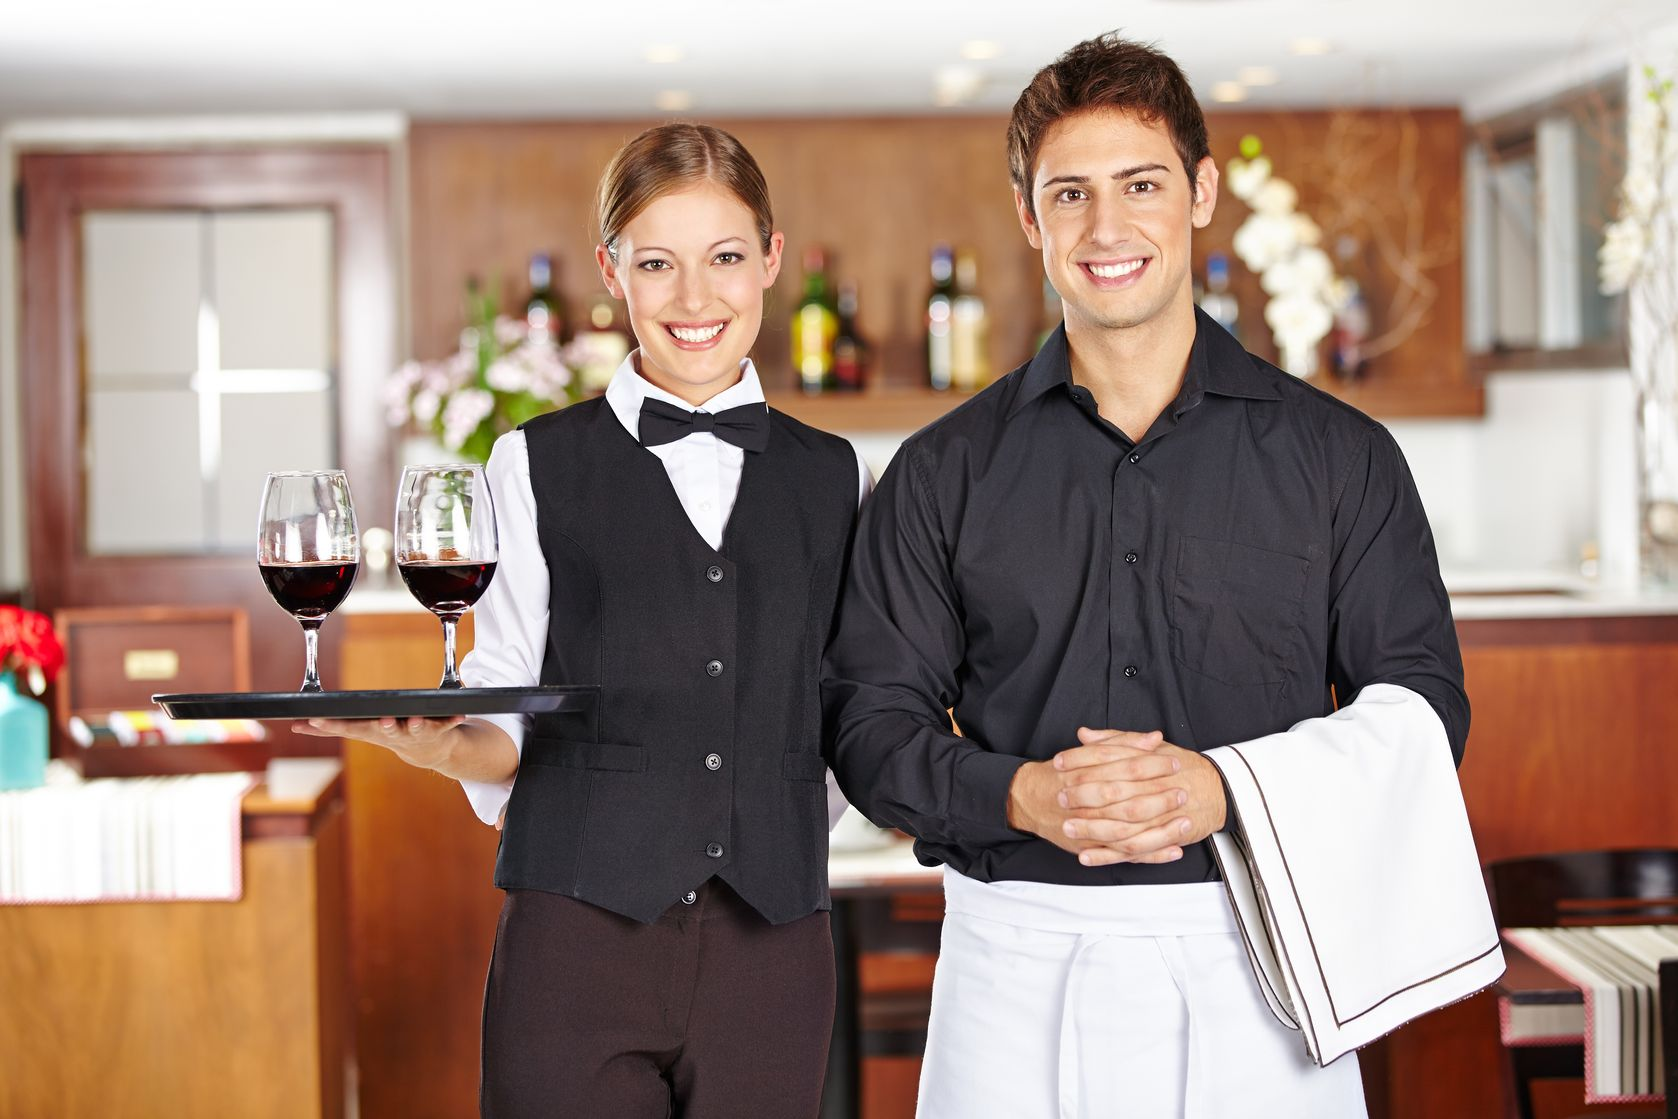 Event and Catering Business for sale in Tasmania